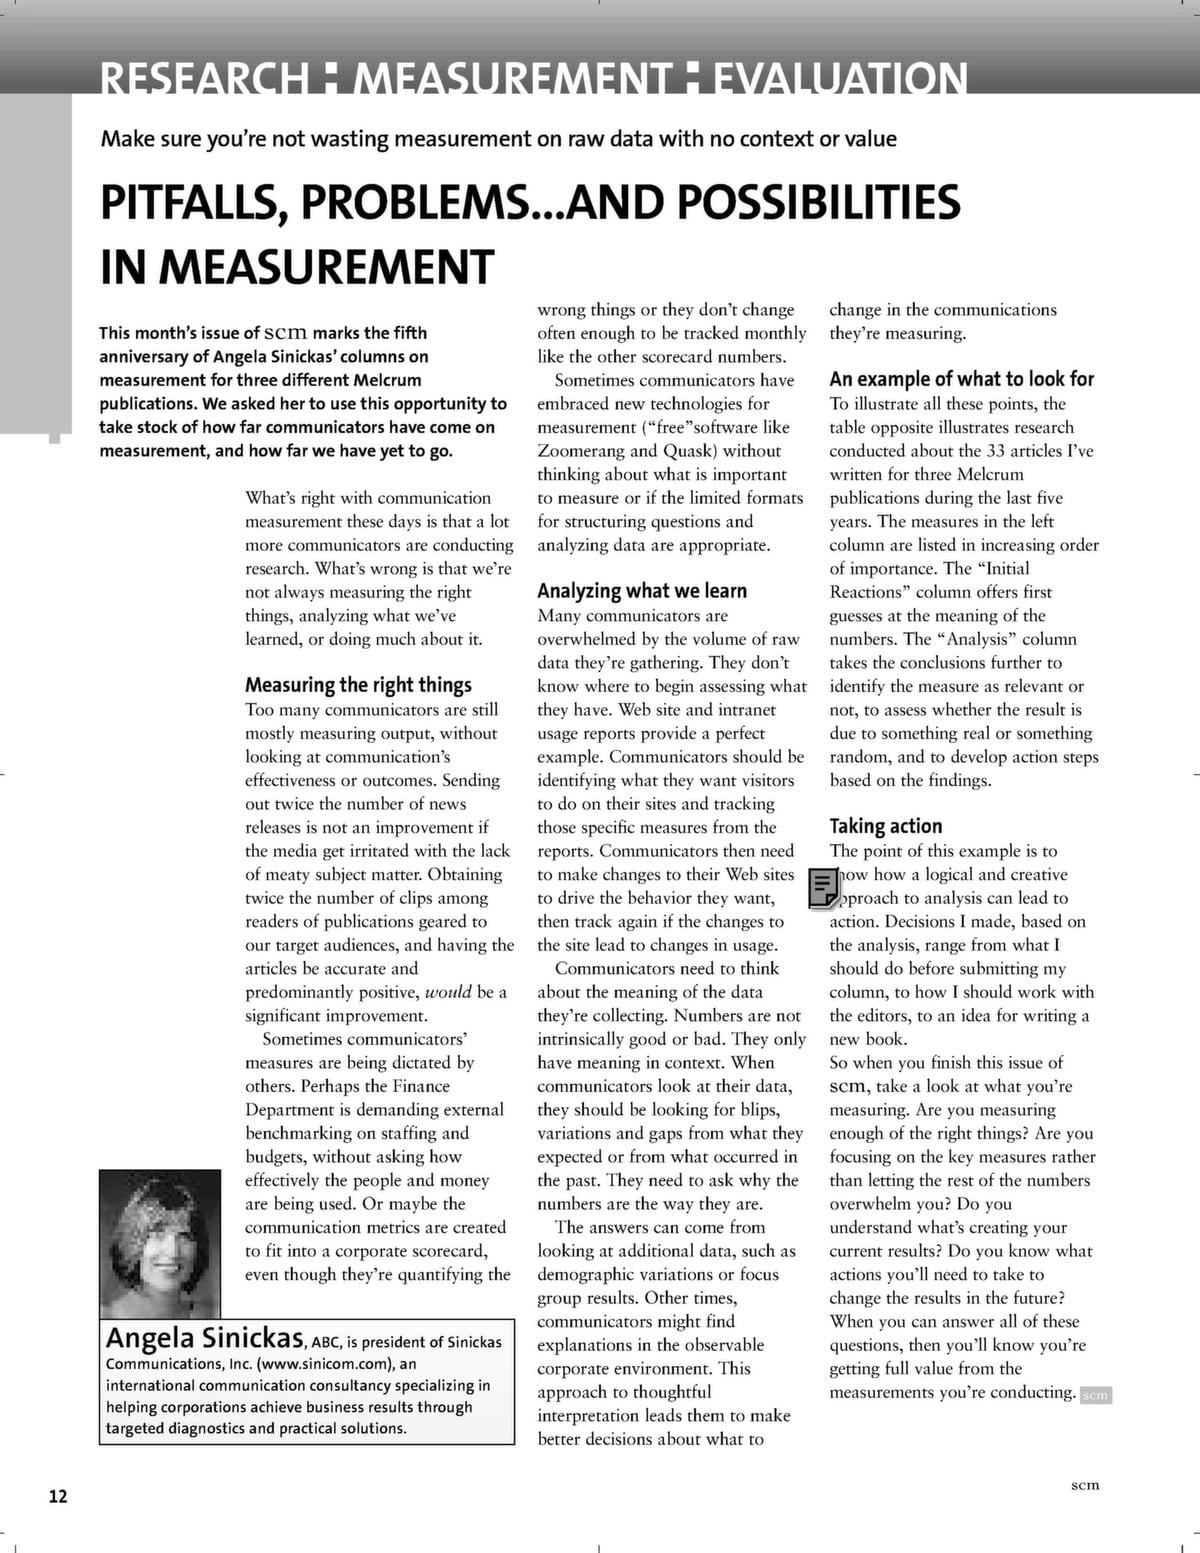 Pitfalls, problems   and possibilities in measurement